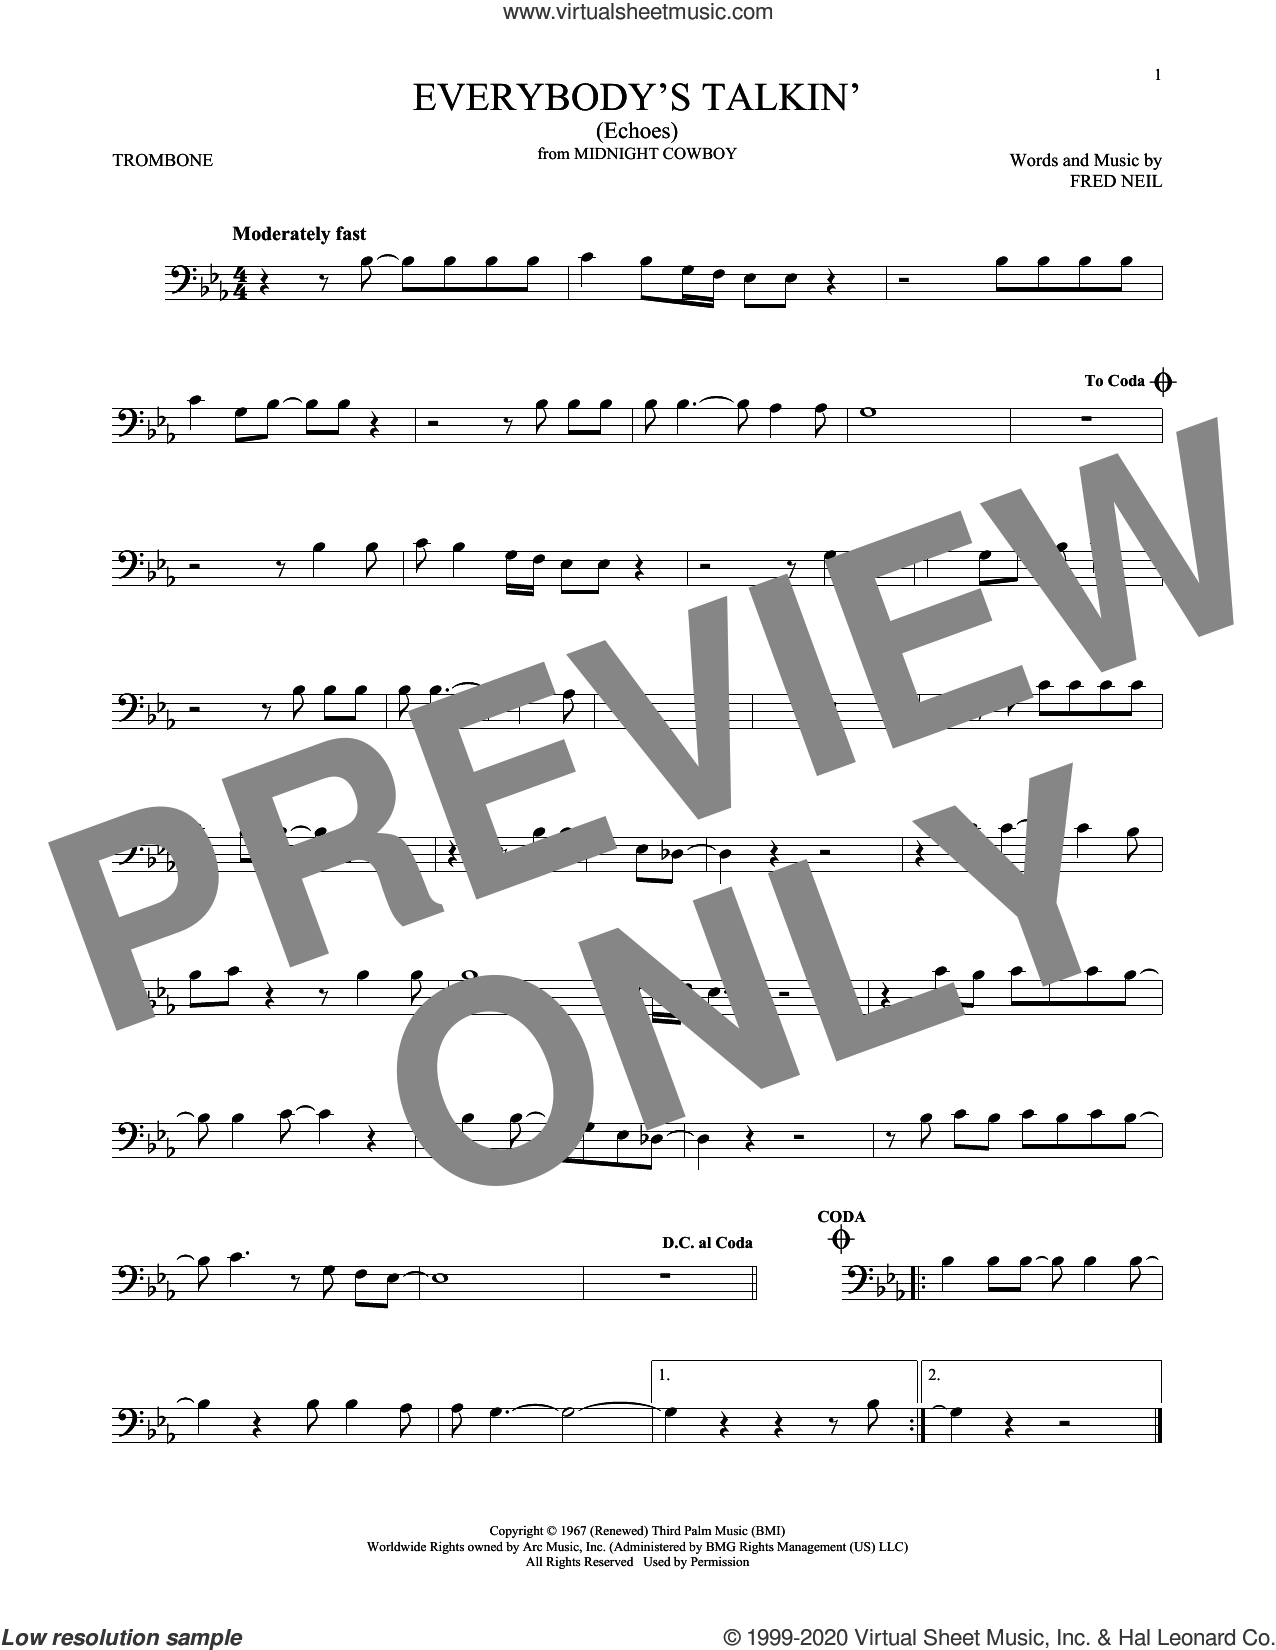 Everybody's Talkin' (Echoes) sheet music for trombone solo by Harry Nilsson and Fred Neil, intermediate skill level